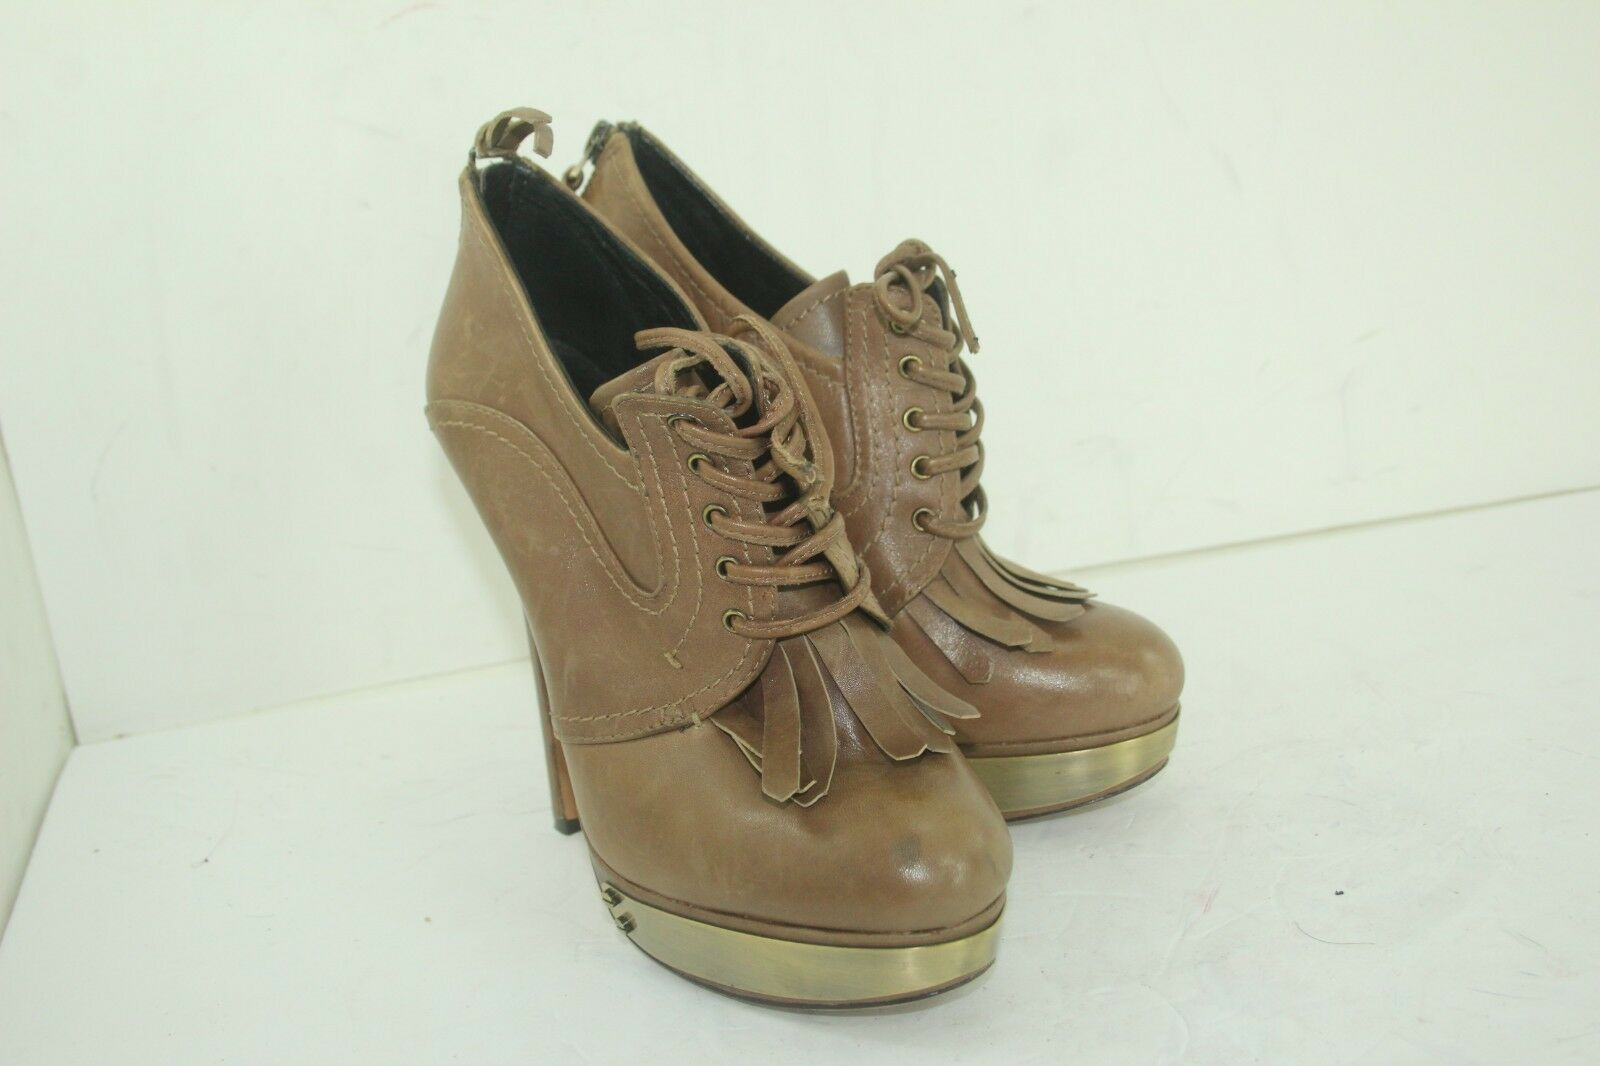 HH HOUSE OF HARLOW BOOTIES SIZE 37 US SIZE 7 BROWN IN GREAT CONDITION